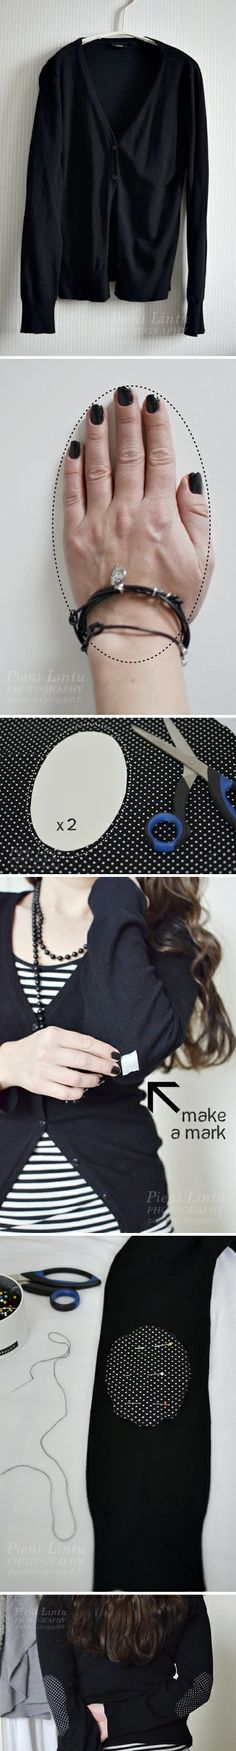 Elbow Patches, Handicraft, Cute, Diy, Craft, Bricolage, Arts And Crafts, Kawaii, Do It Yourself